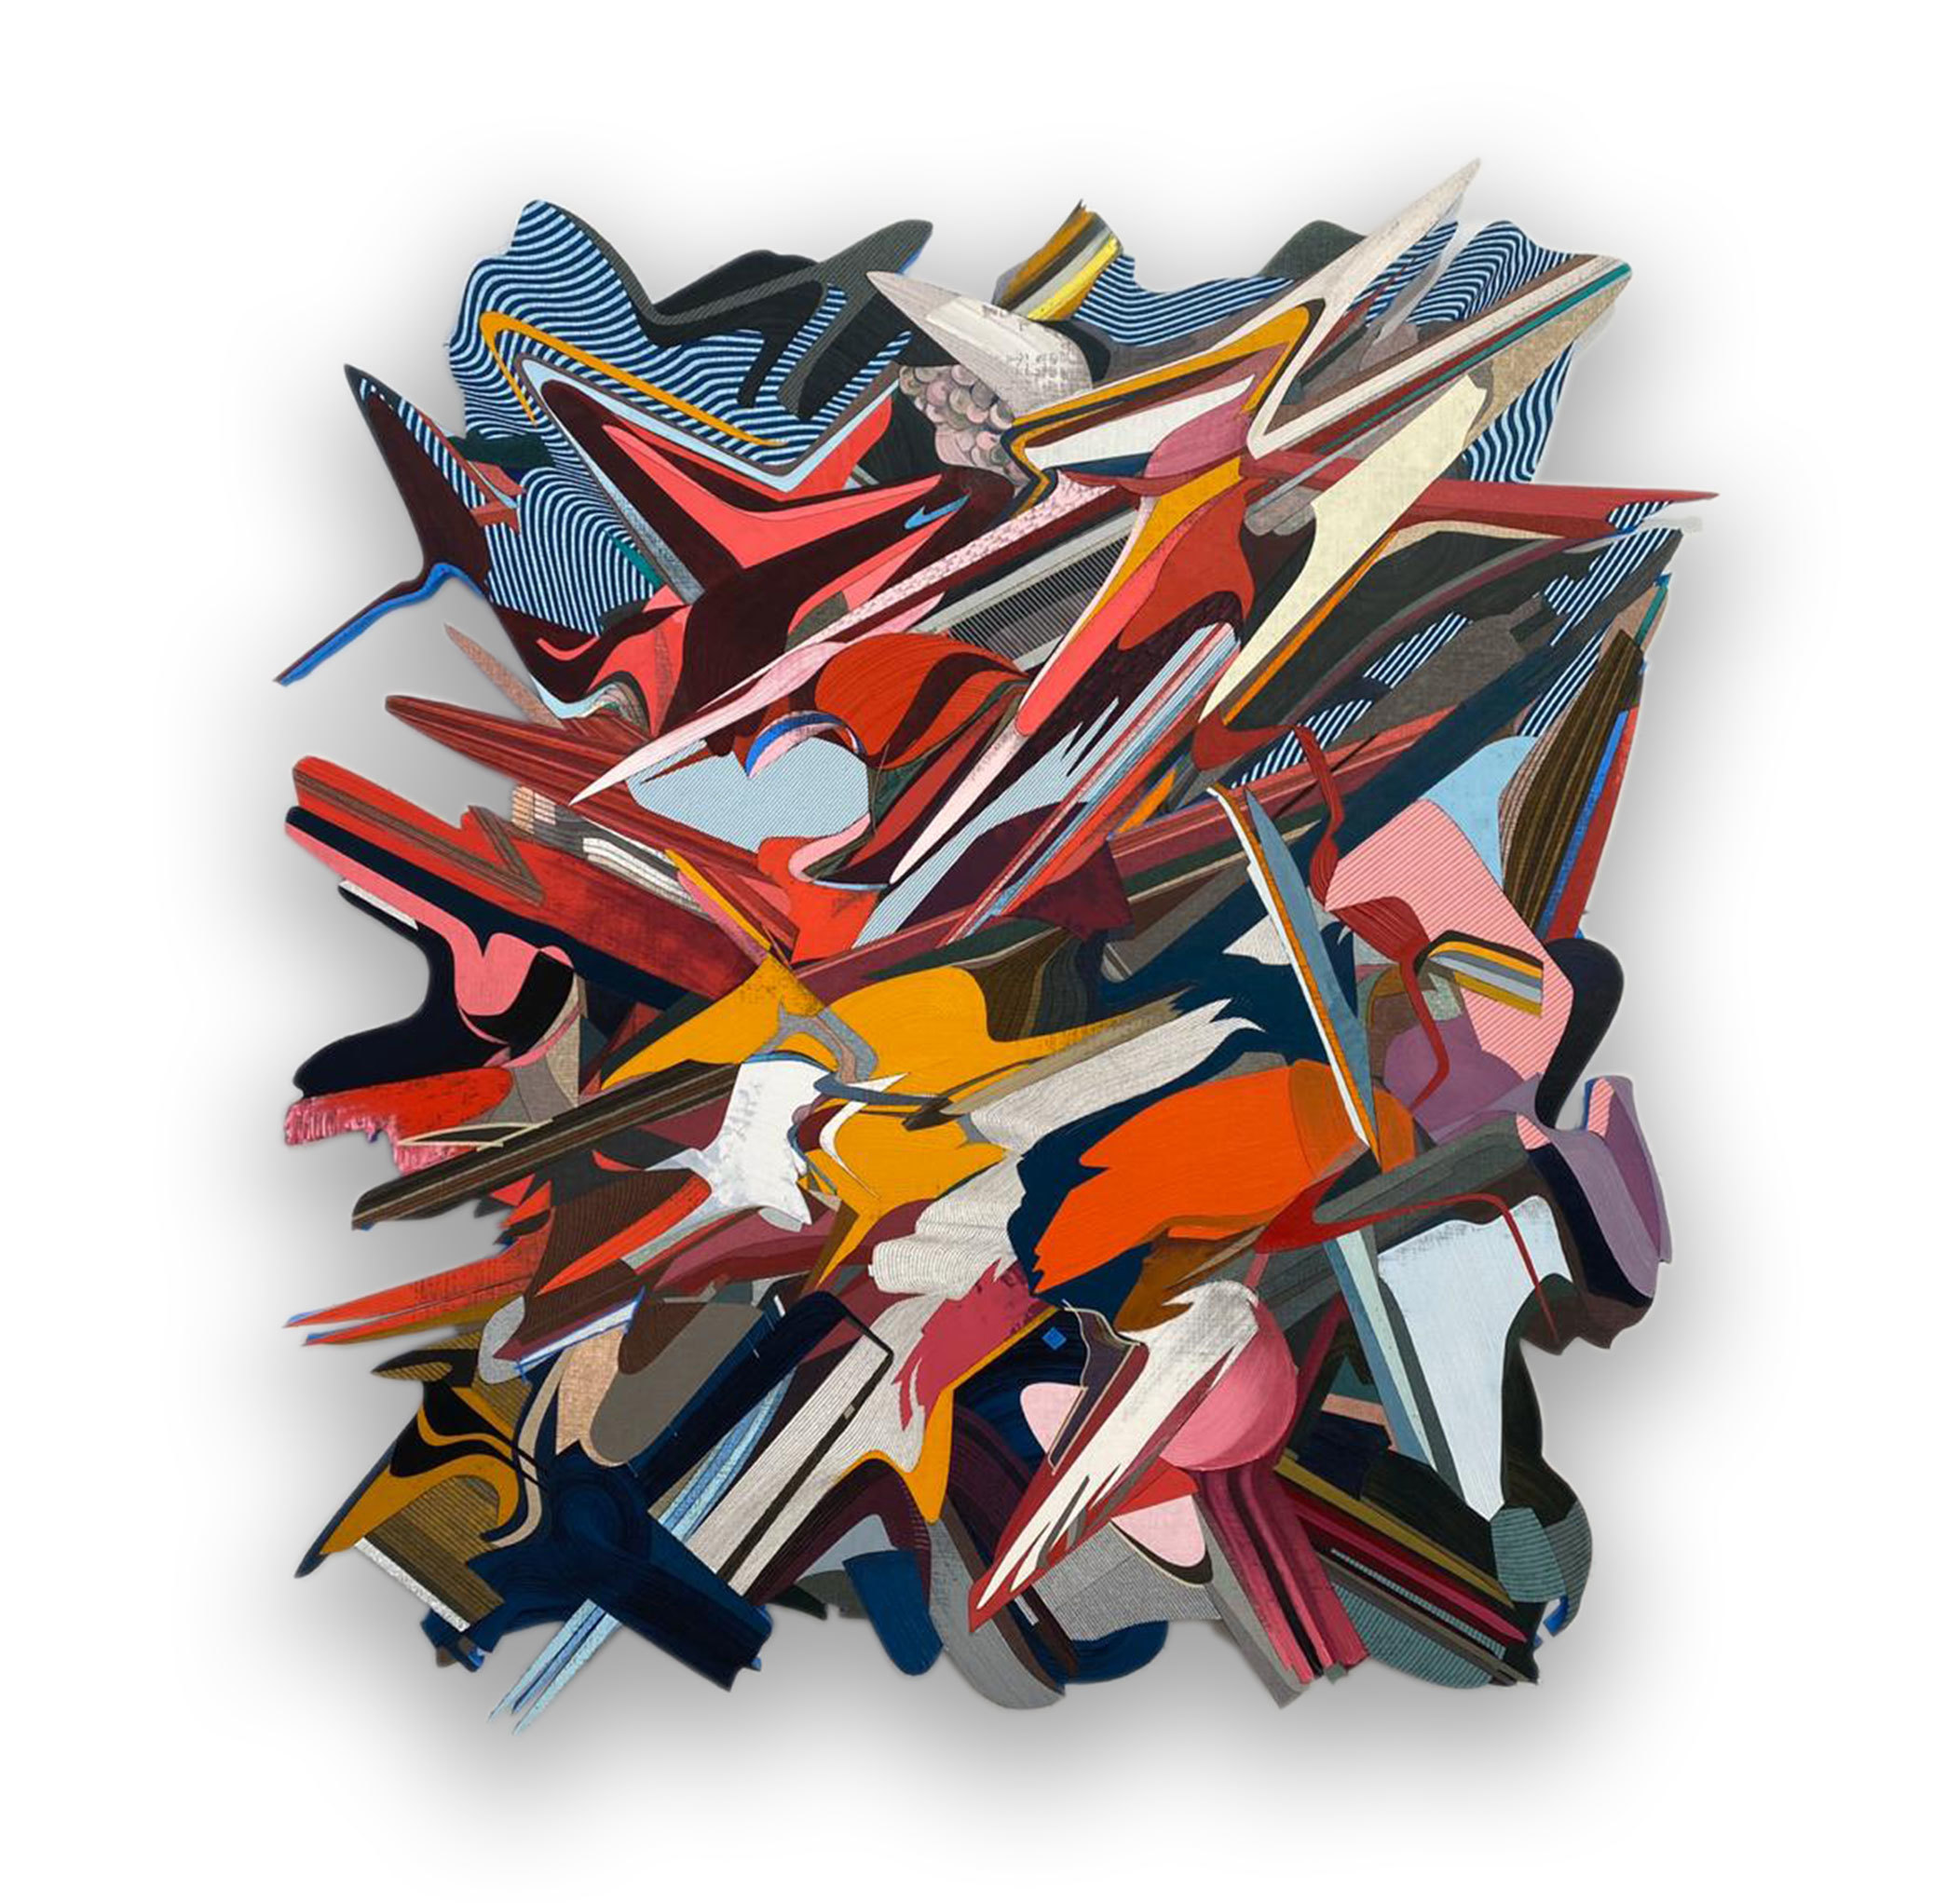 2020 Oil & Acrylic on Linen Mounted on Panel 70.866 x 64.961 in (180 x 165 cm) - Marc Straus Gallery